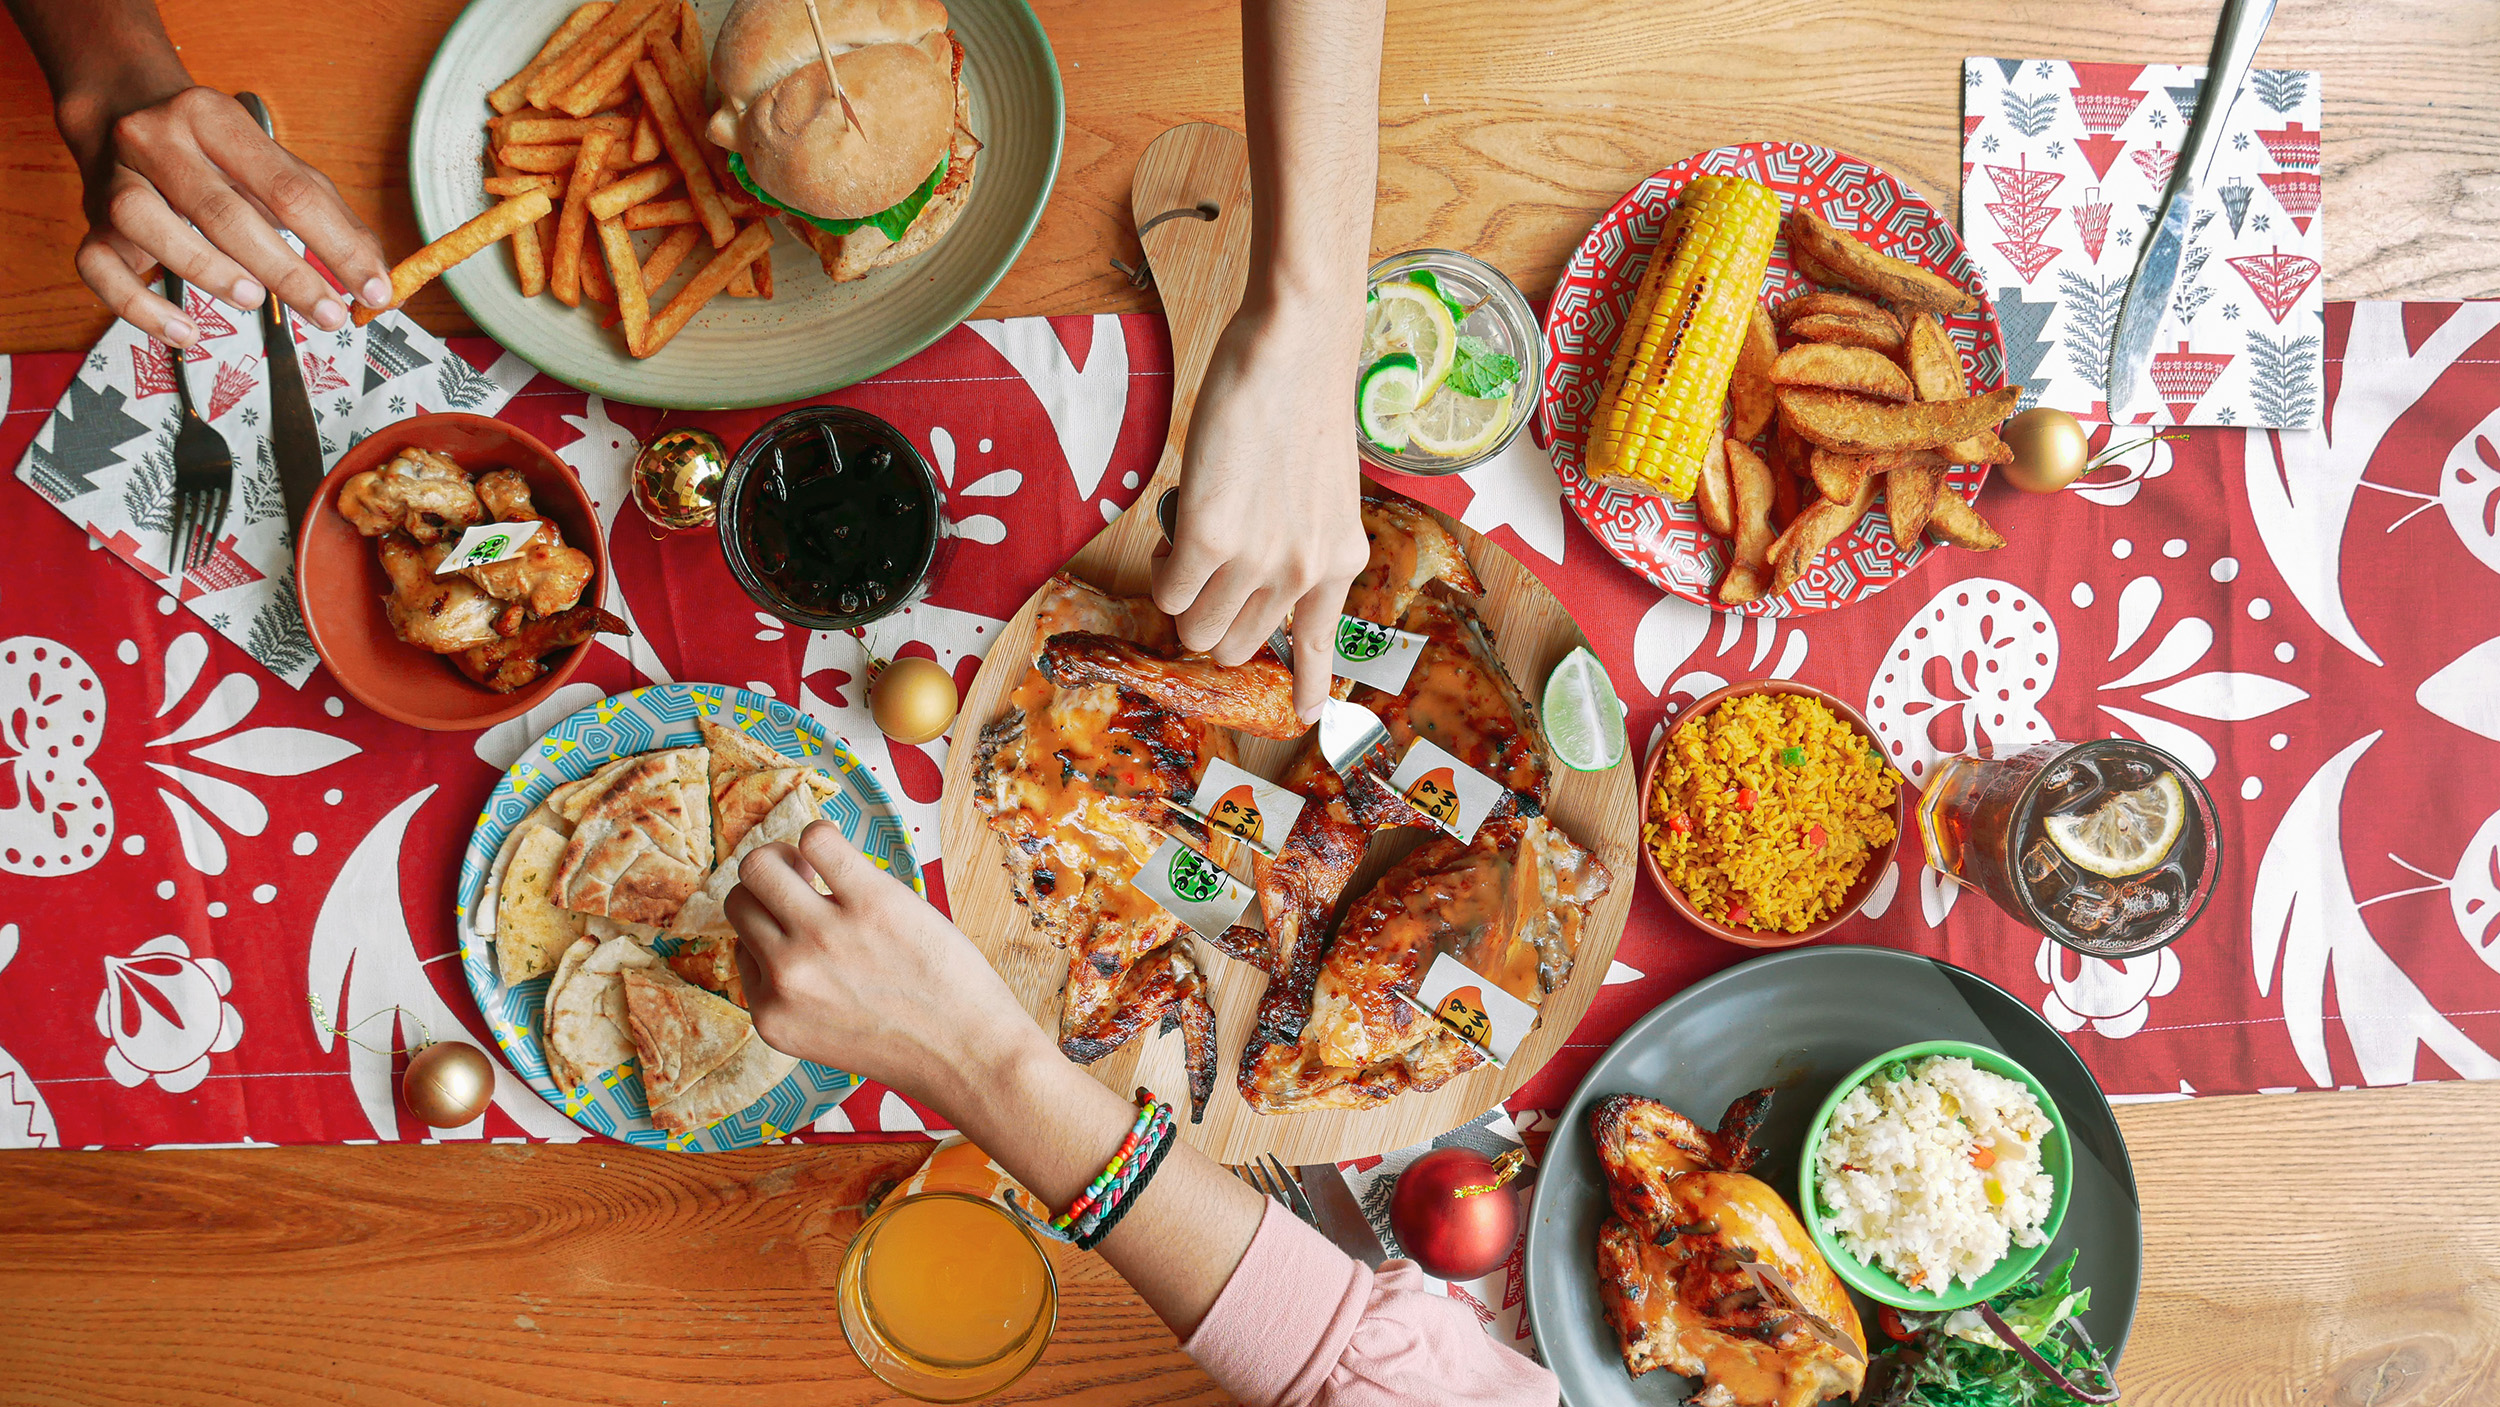 Image from Nando's